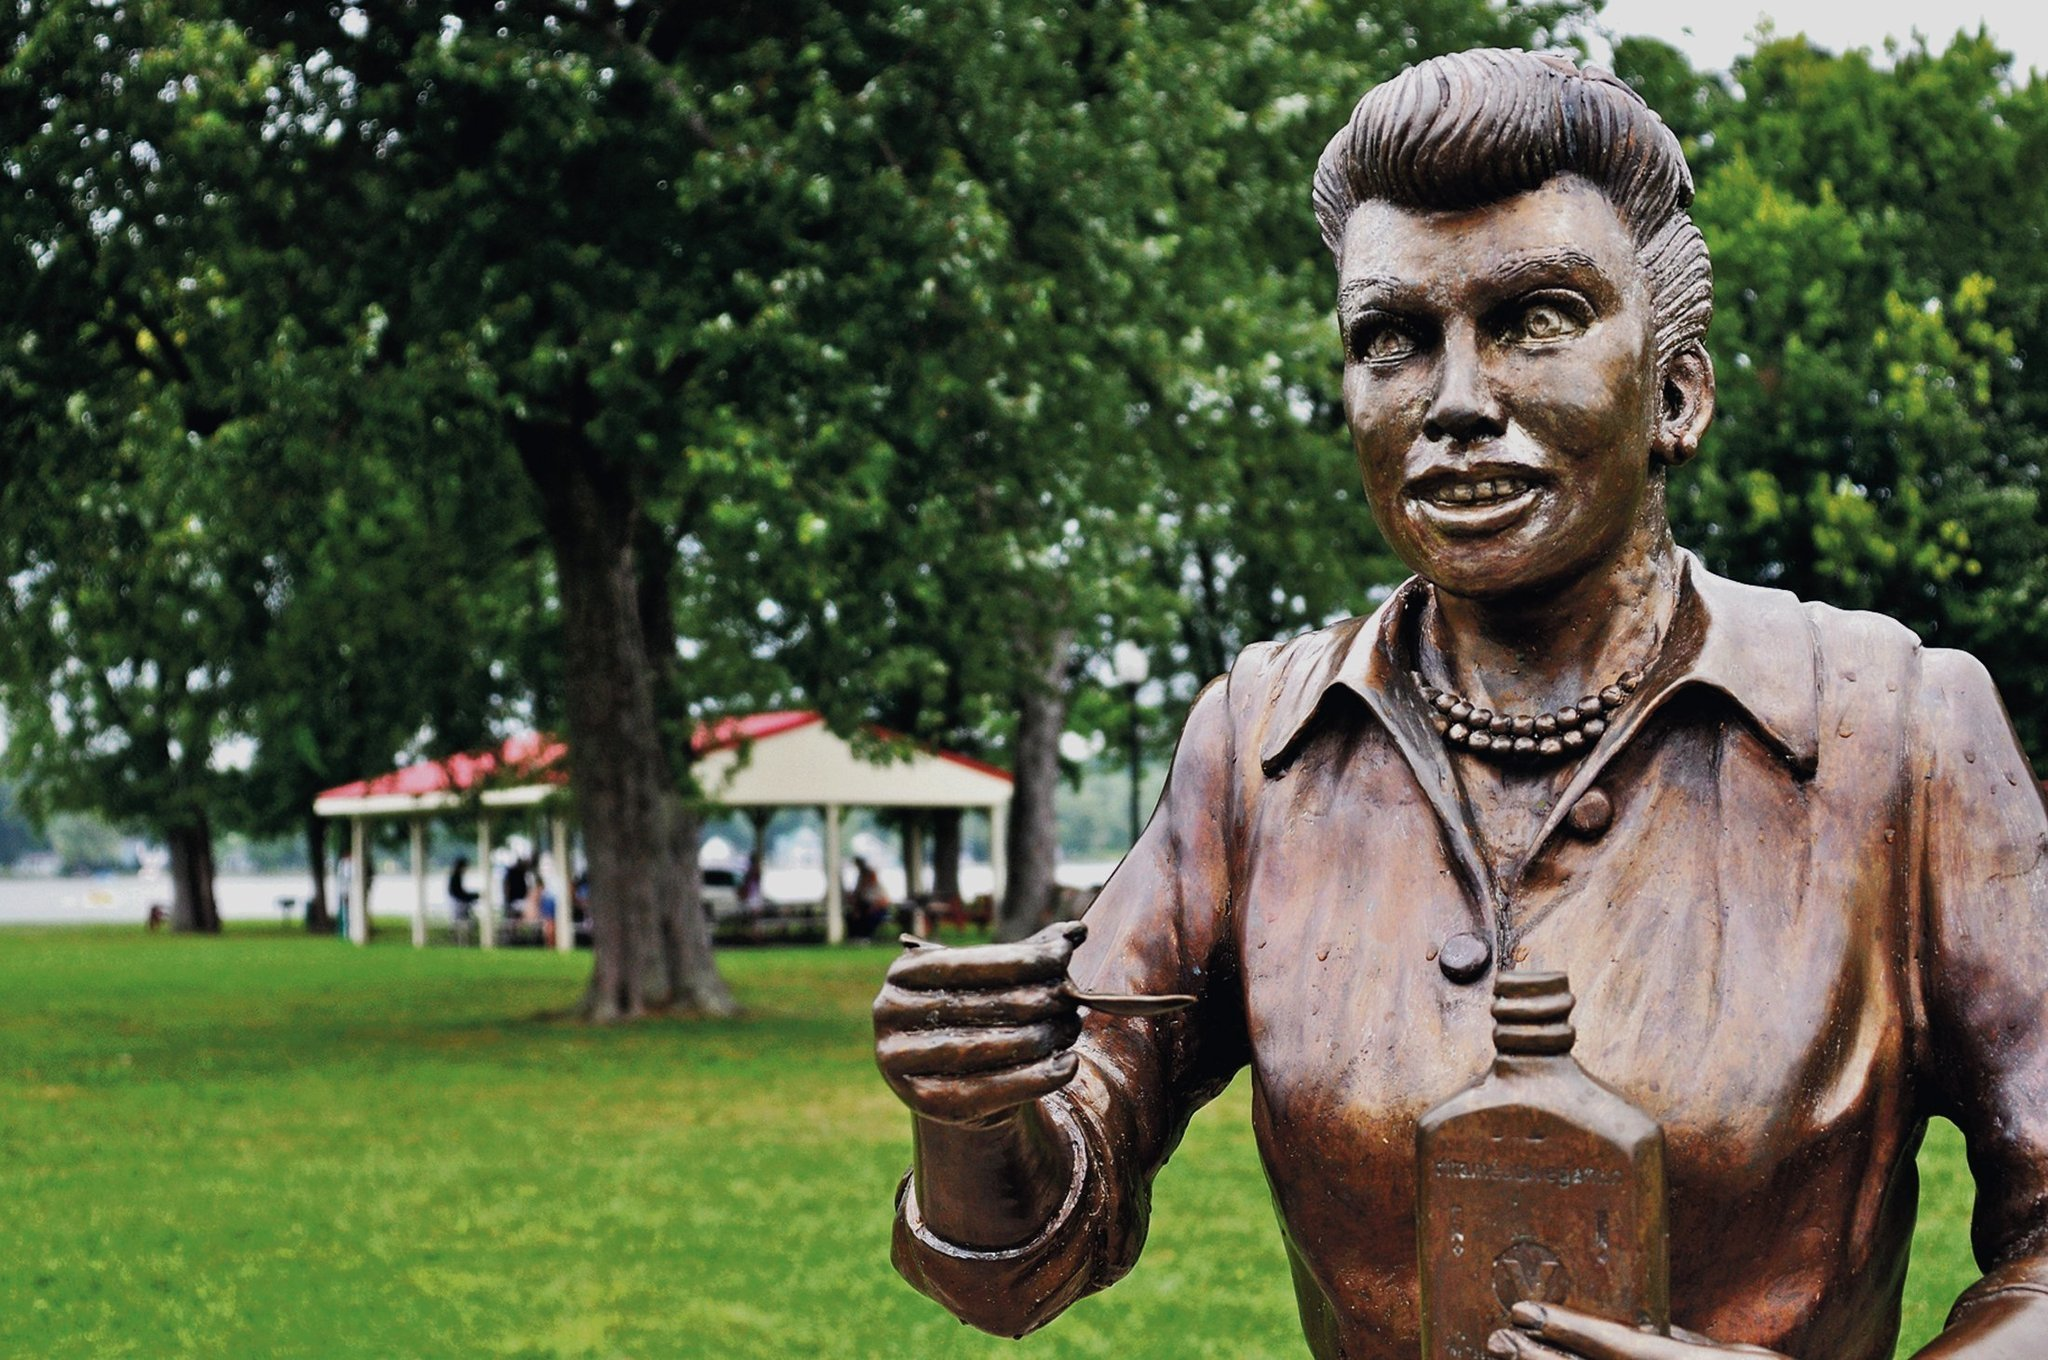 100 Famous People Painting: Sculptor Of 'scary' Lucille Ball Statue Is 'heartsick